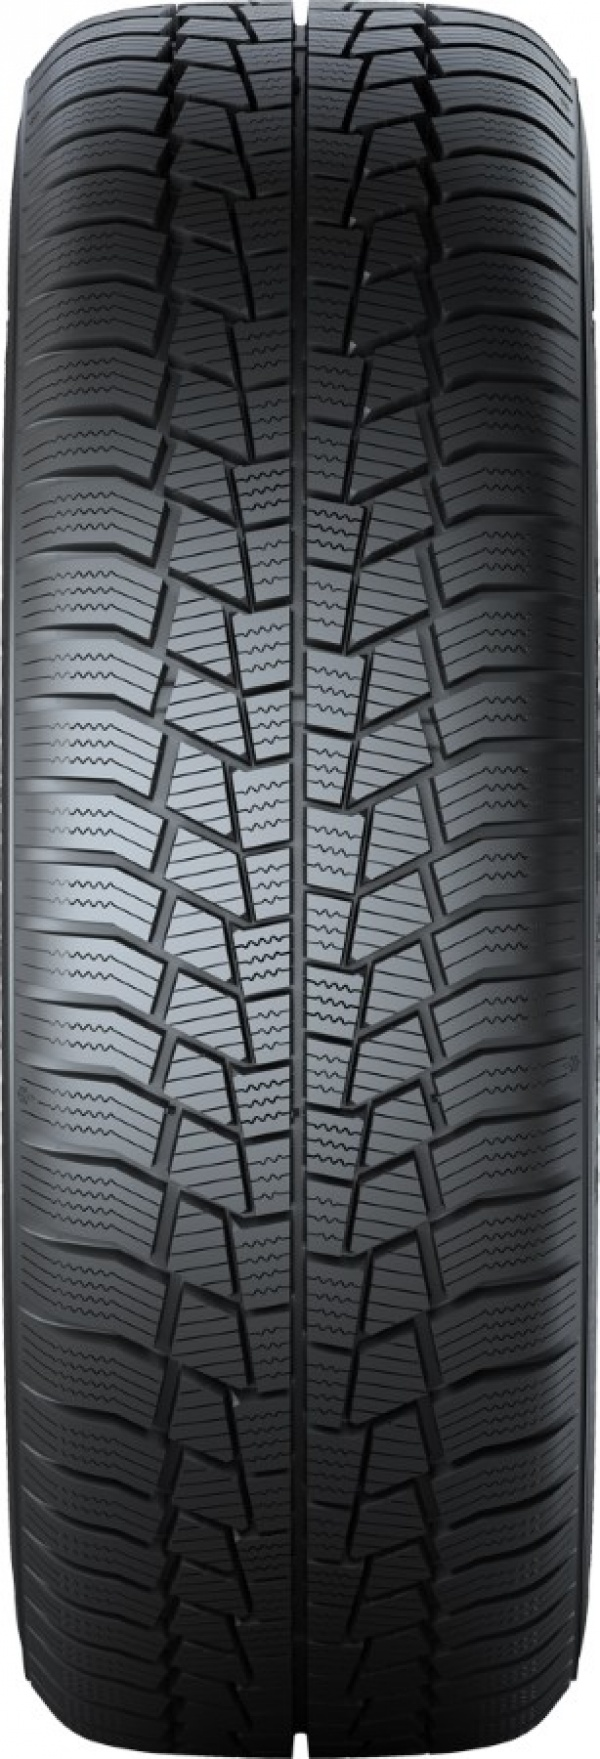 Gislaved Euro Frost 6 225/40 R18 92V  не шип